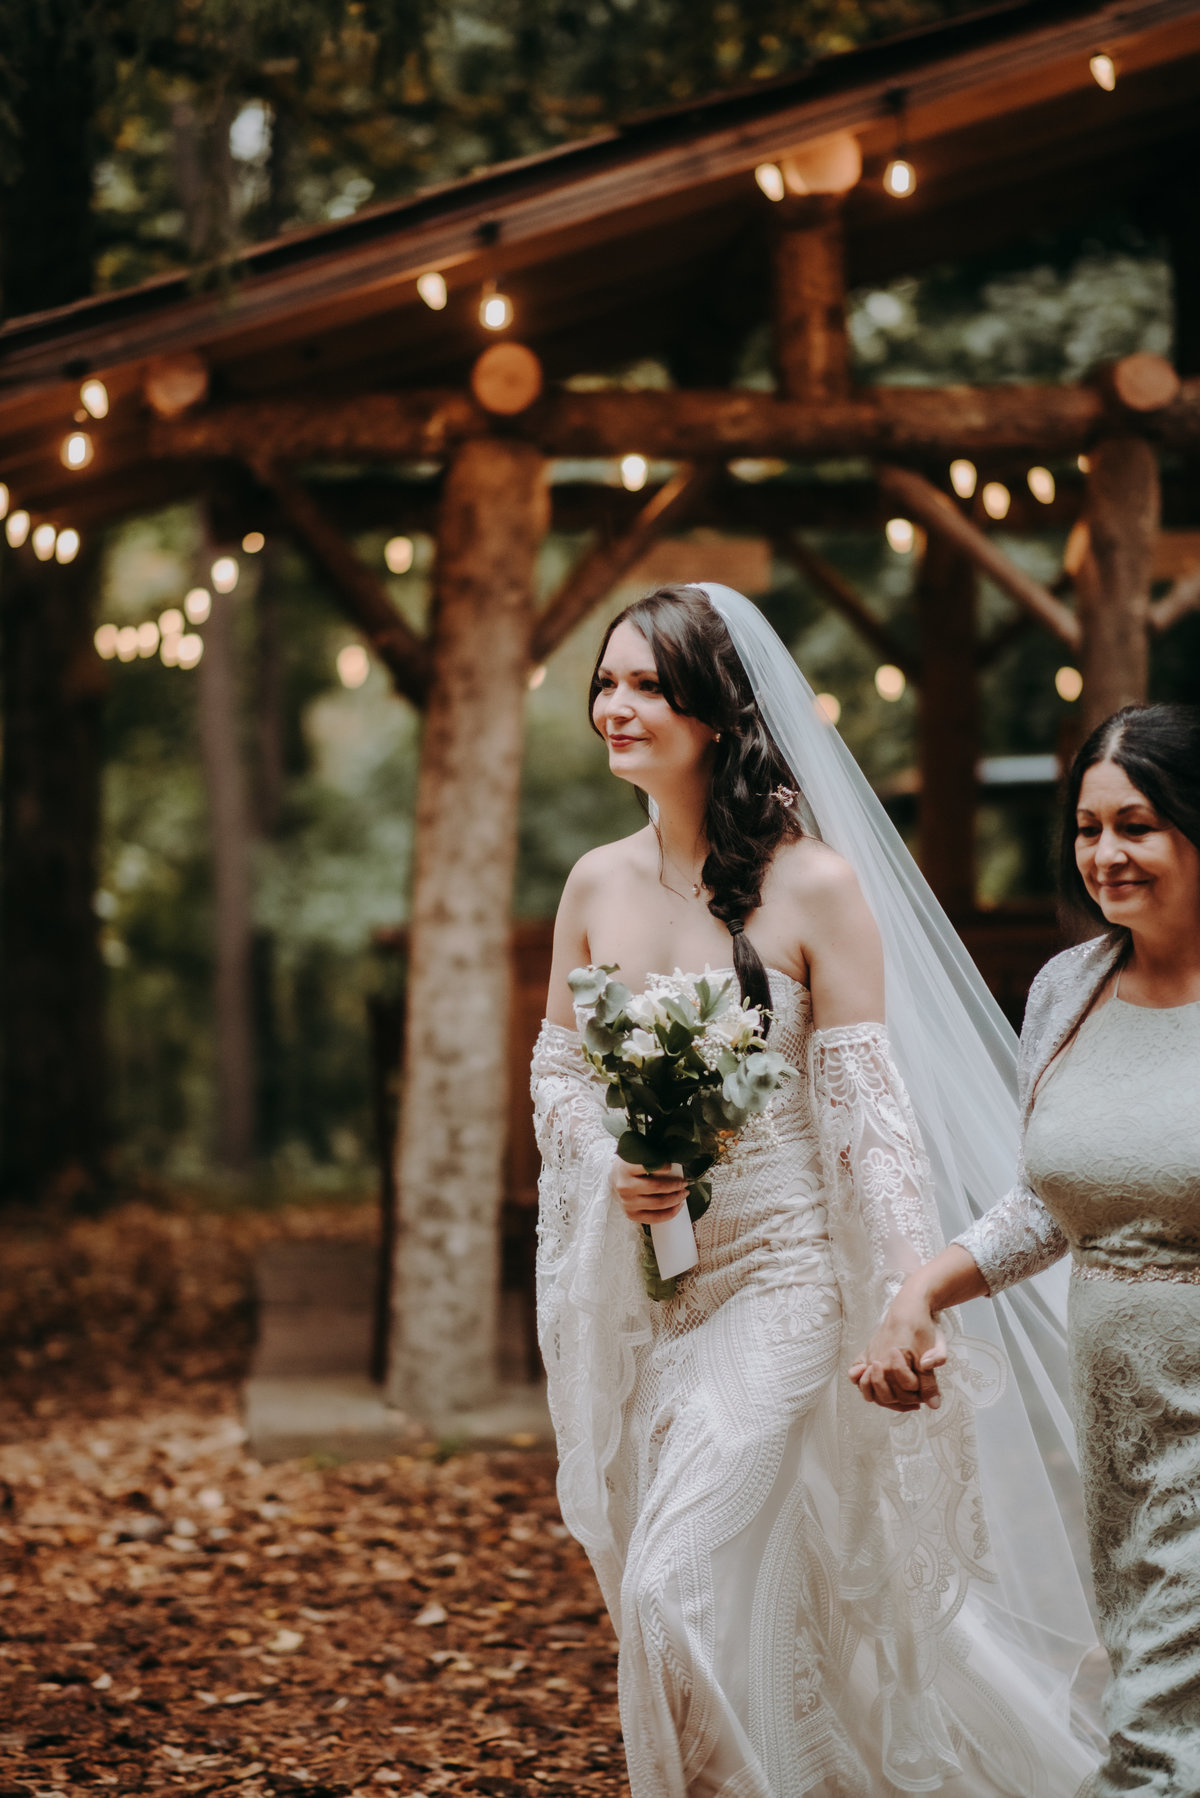 CatskillsJulietandEric2019WeddingPhotography (54 of 213)